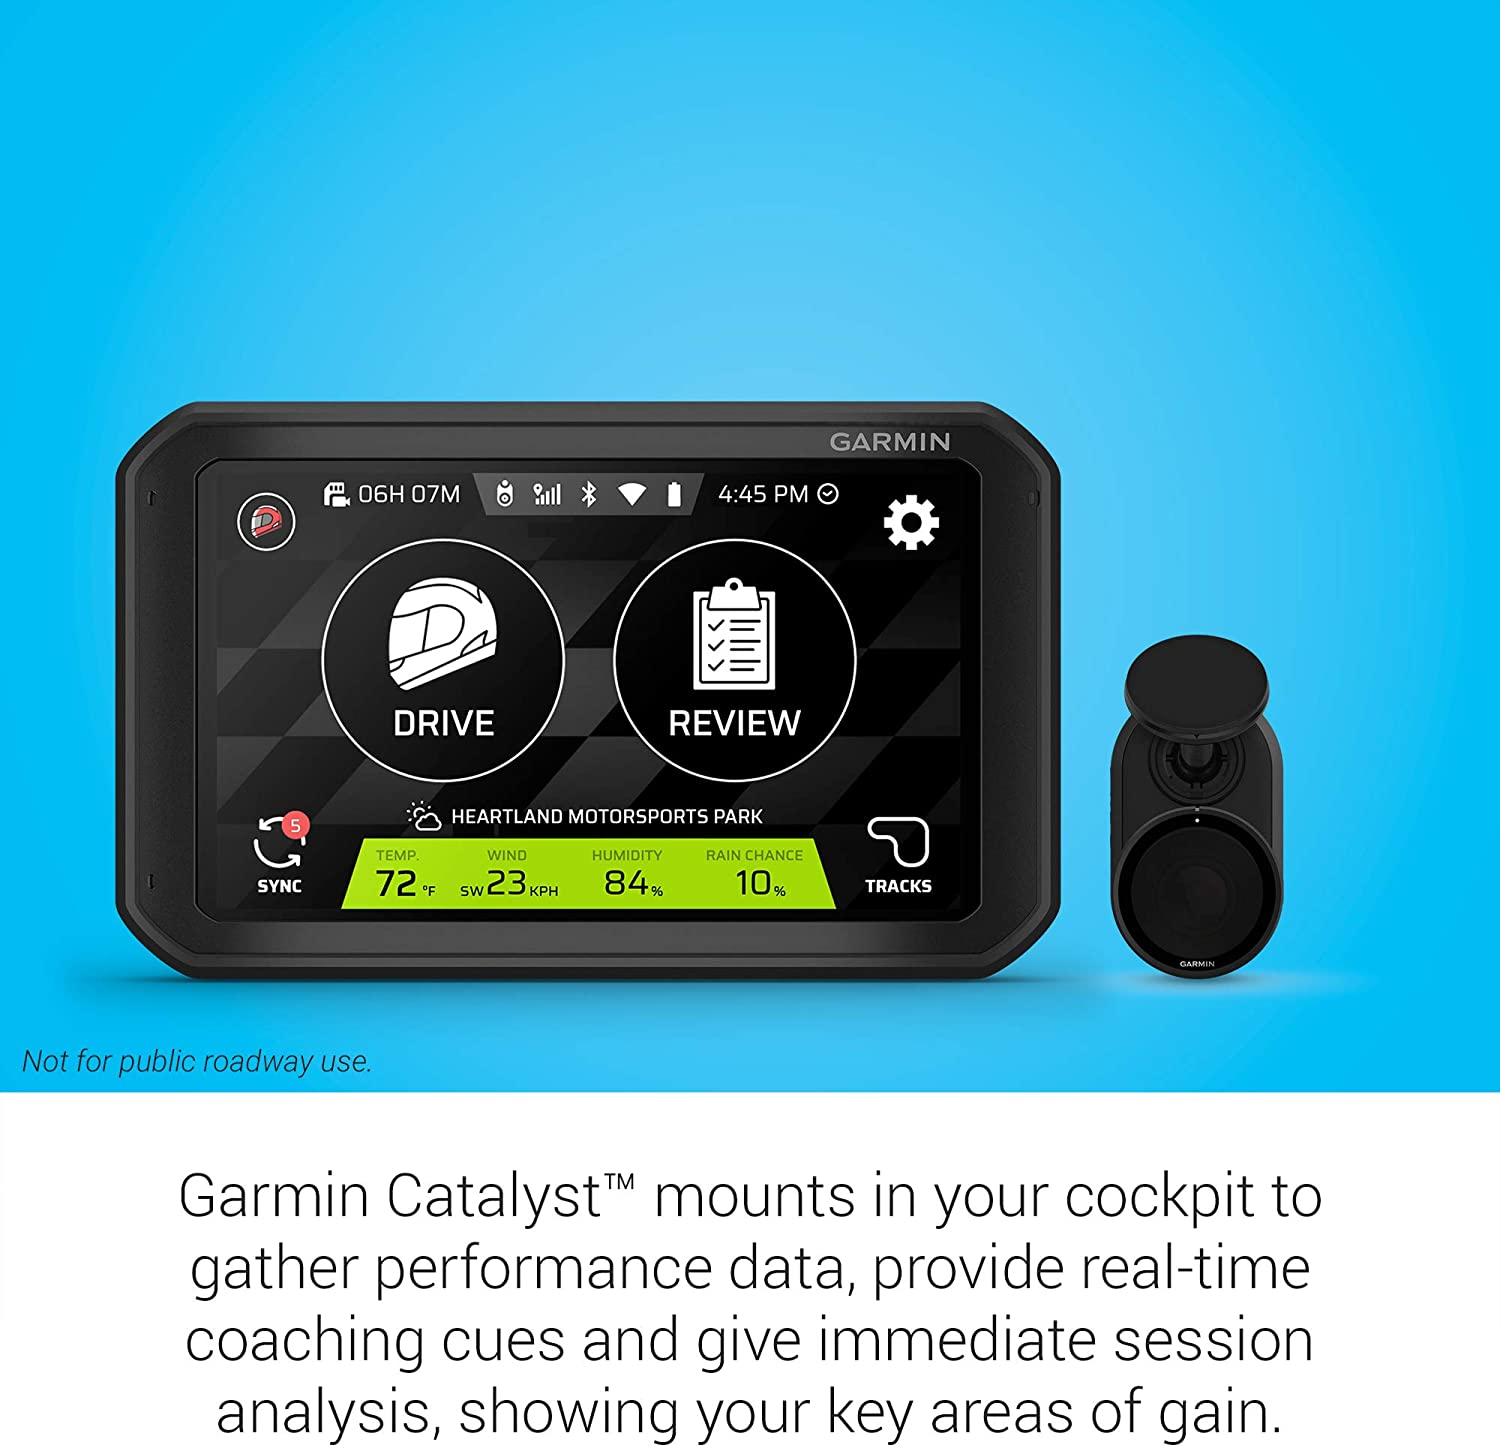 Garmin Catalyst Driving Performance Optimizer